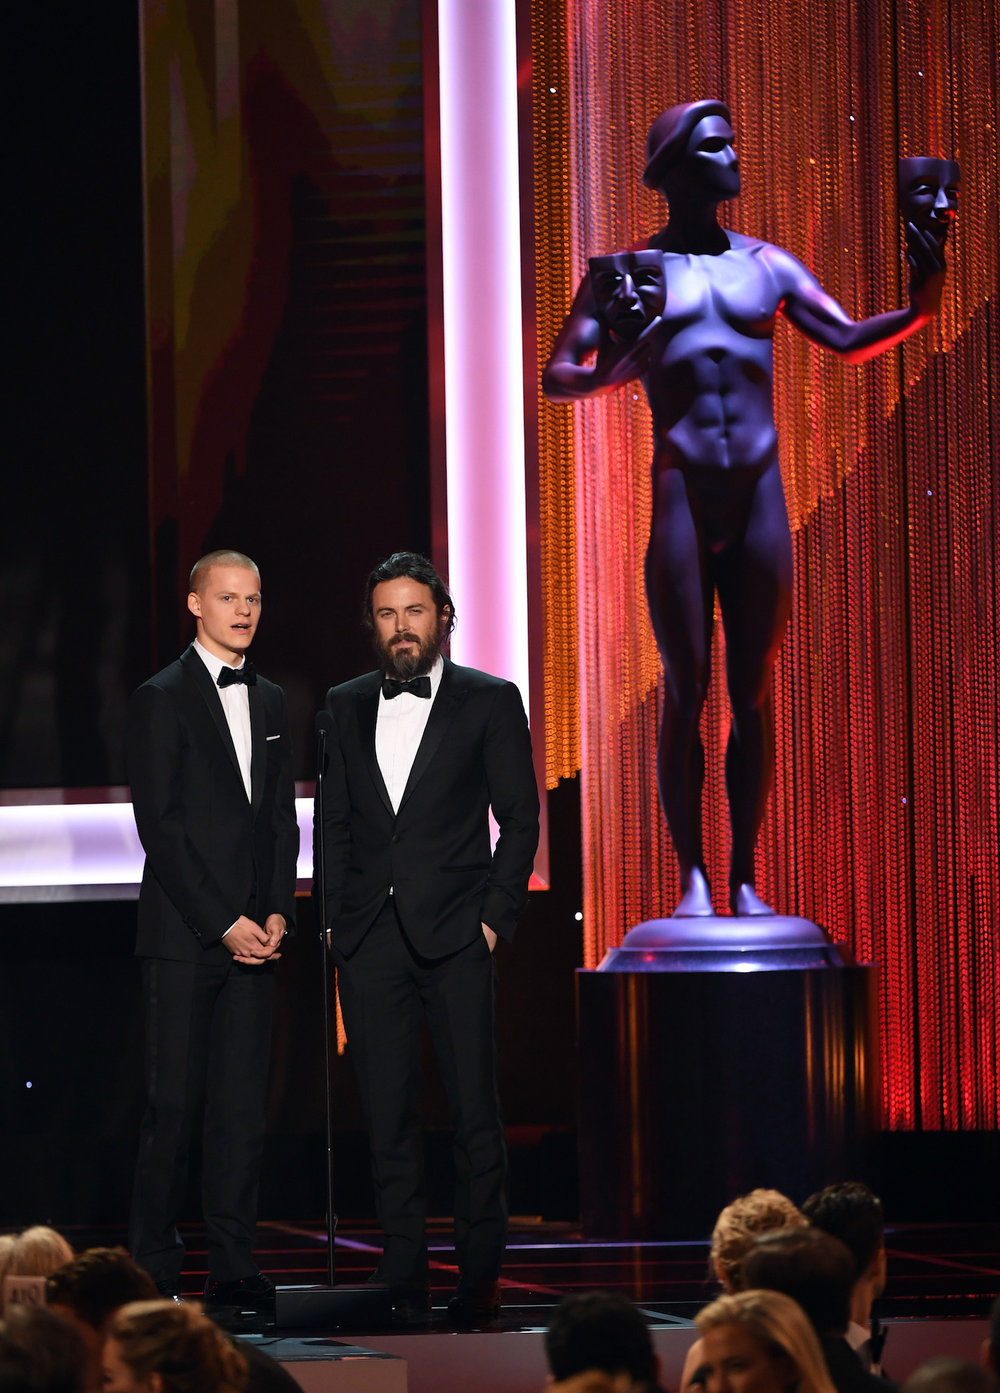 LOS ANGELES, CA - JANUARY 29:  Actors Lucas Hedges (L) and Casey Affleck speak onstage during The 23rd Annual Screen Actors Guild Awards at The Shrine Auditorium on January 29, 2017 in Los Angeles, California. 26592_014  (Photo by Kevin Winter/Getty Images ) *** Local Caption *** Lucas Hedges, Casey Affleck